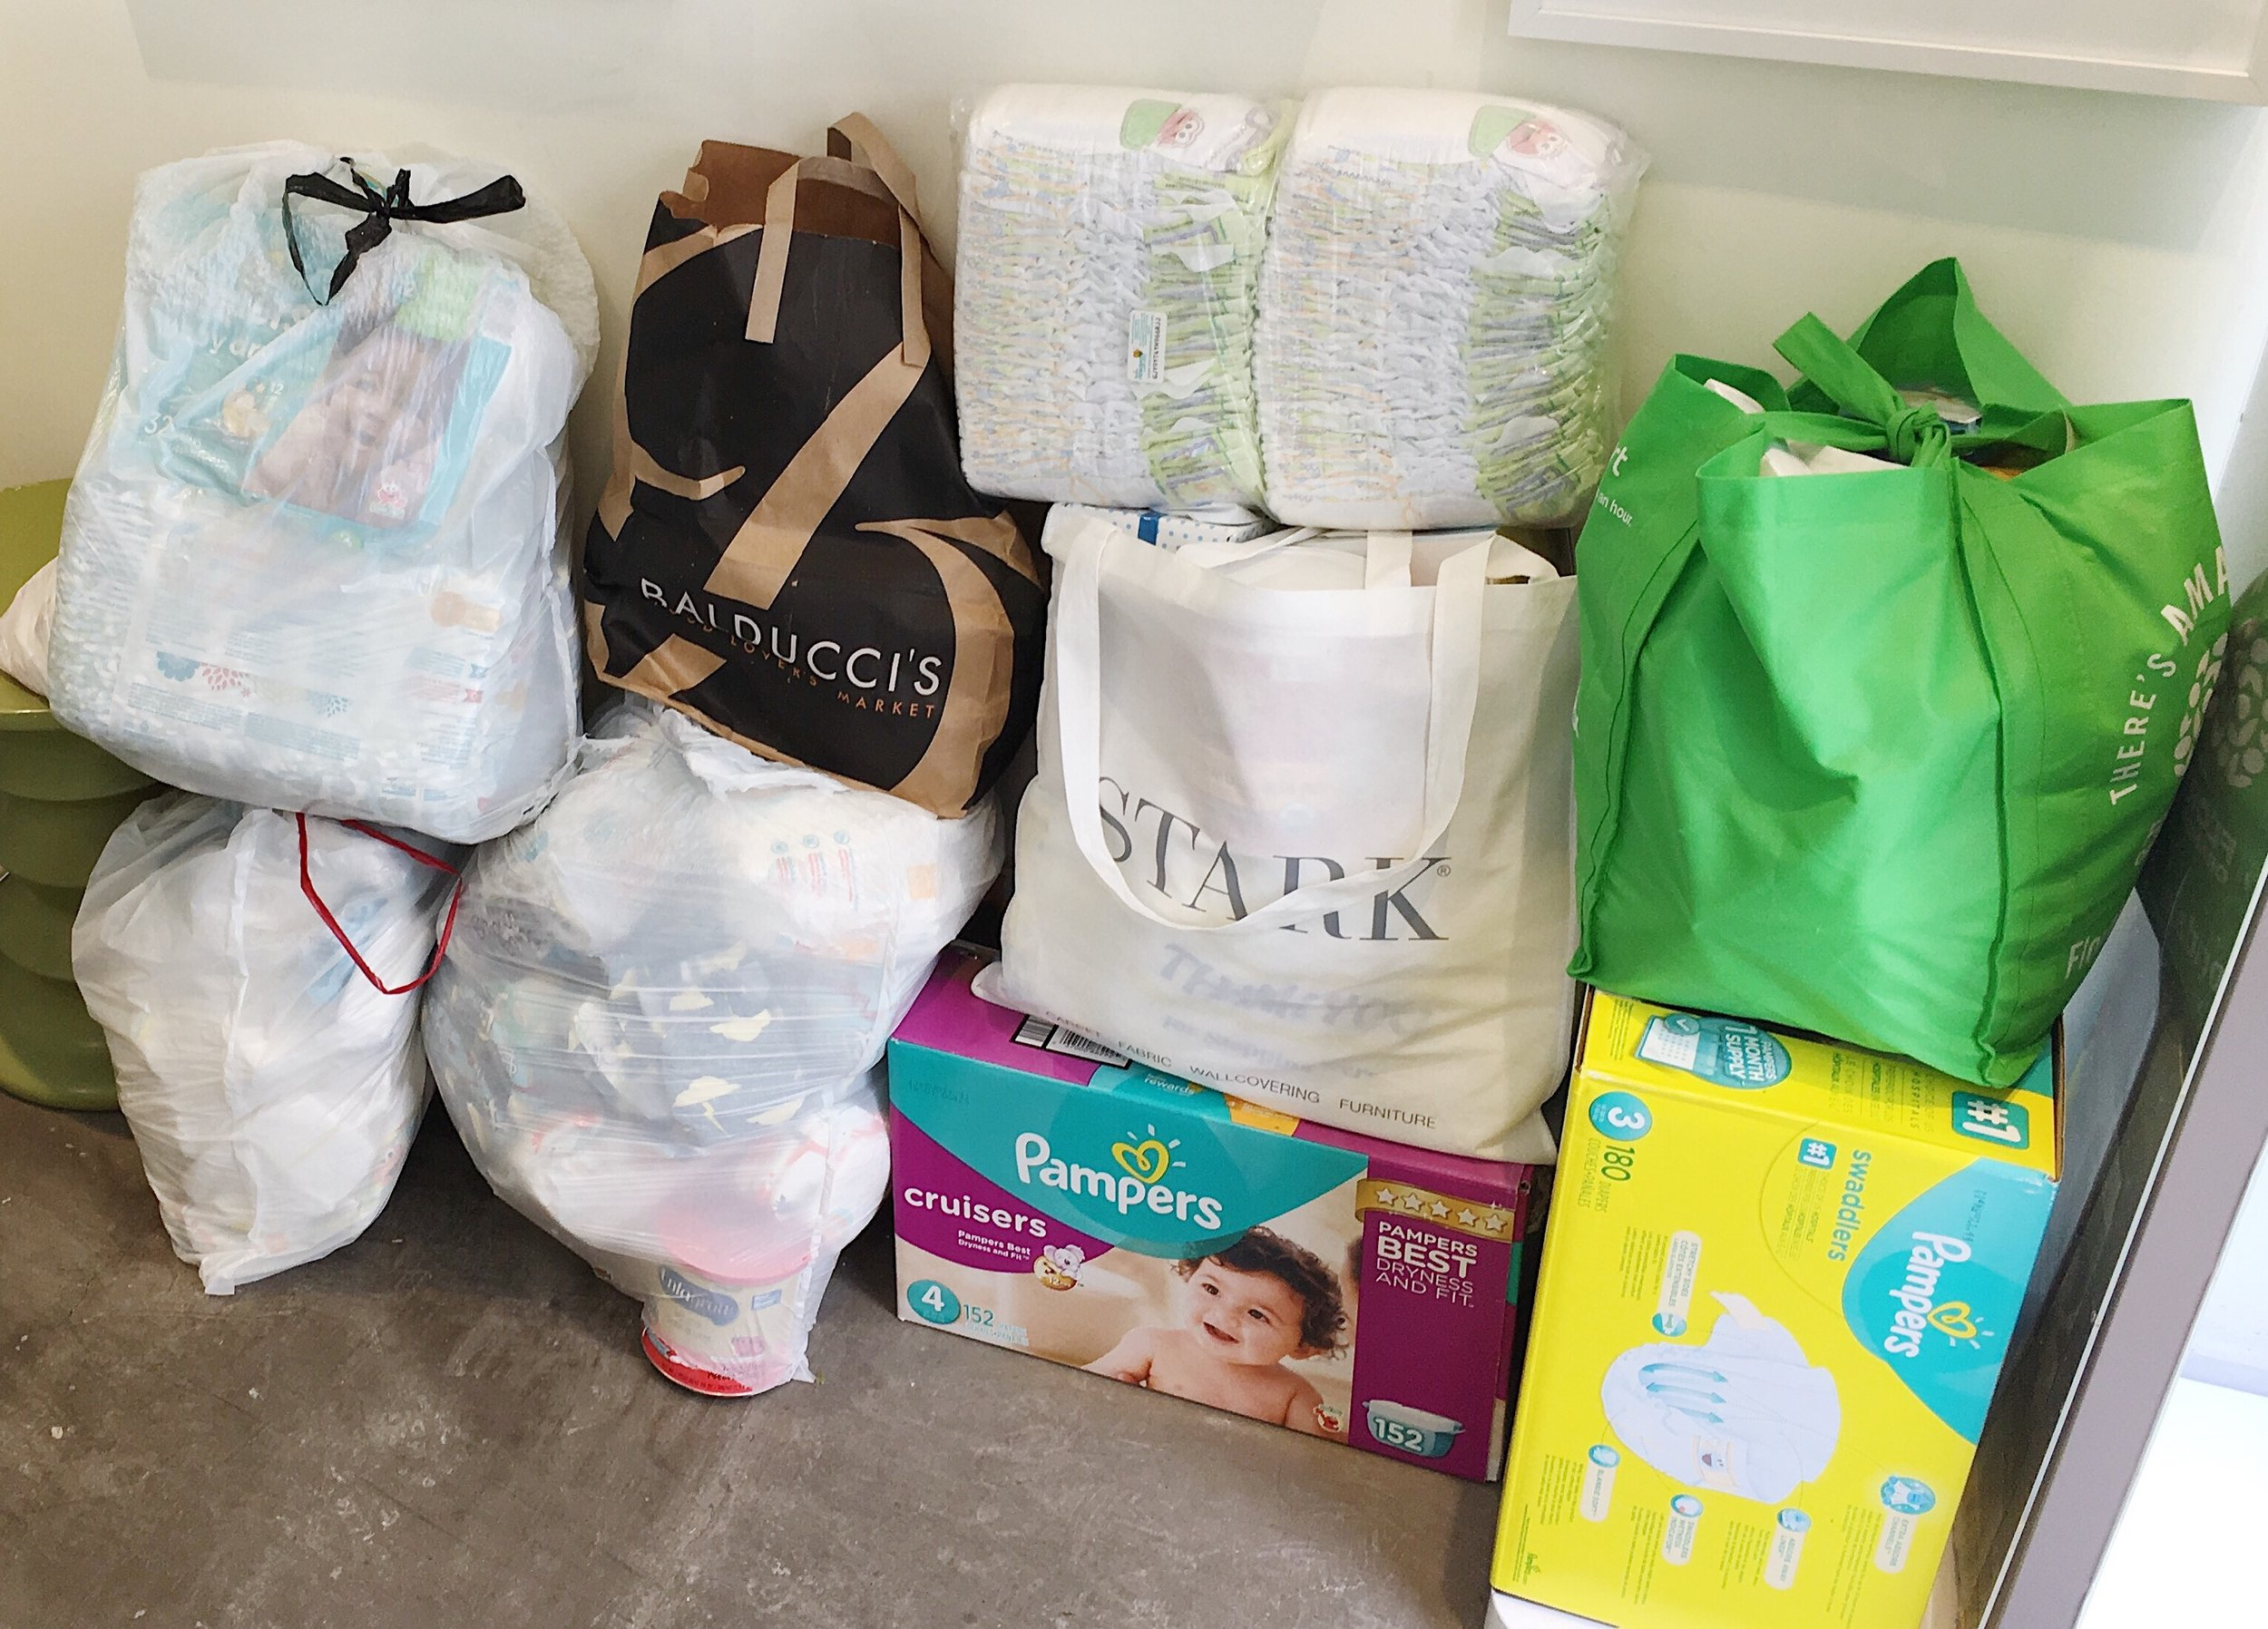 Everly & Monet donates to the DC Diaper Bank